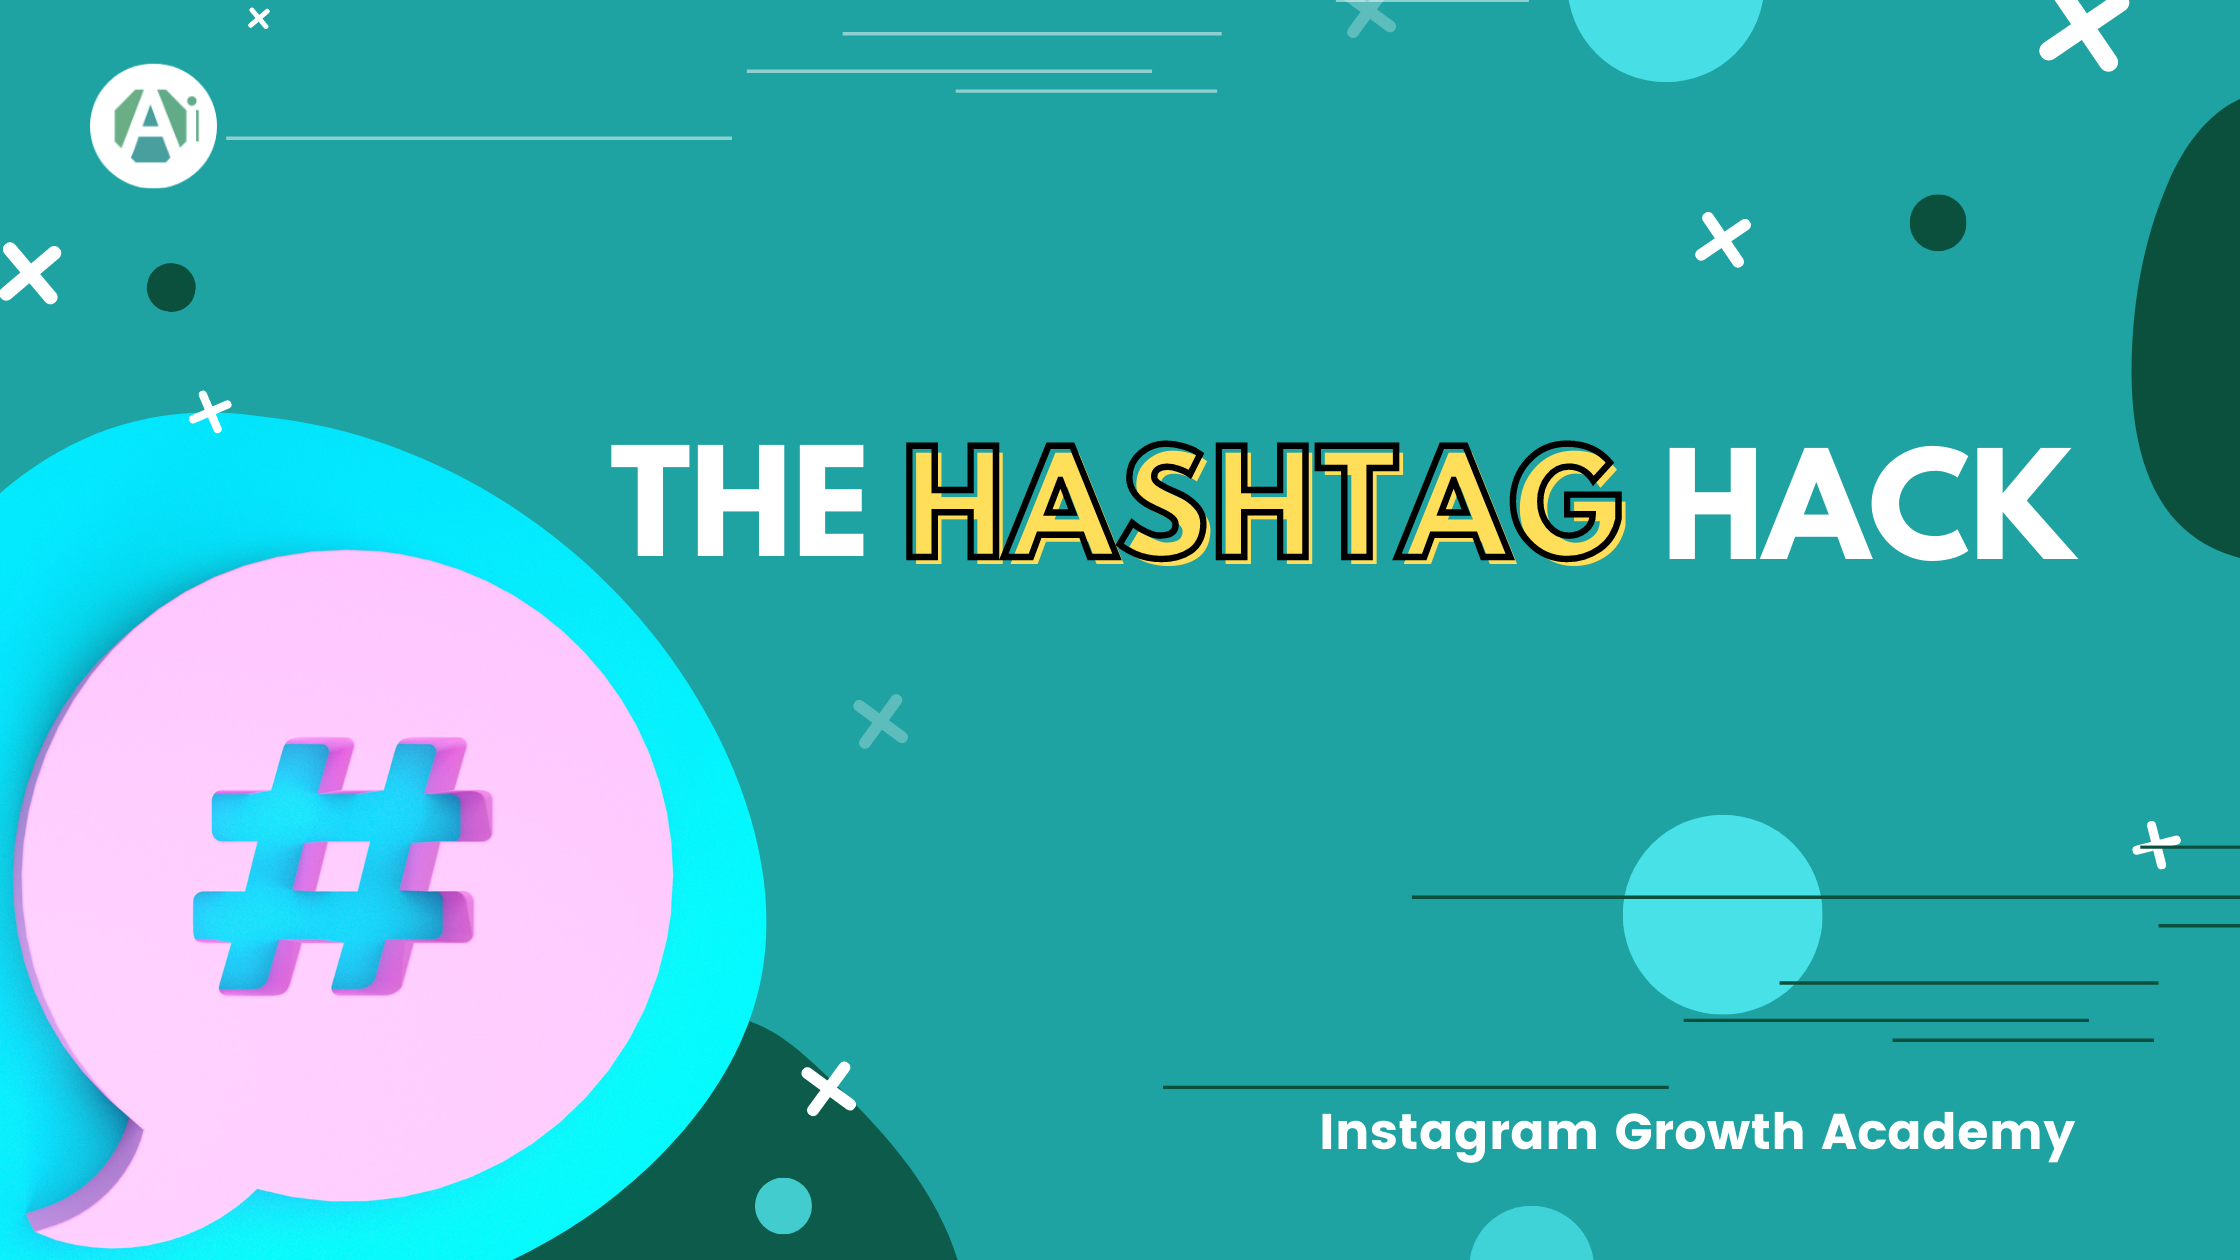 the hashtag hack